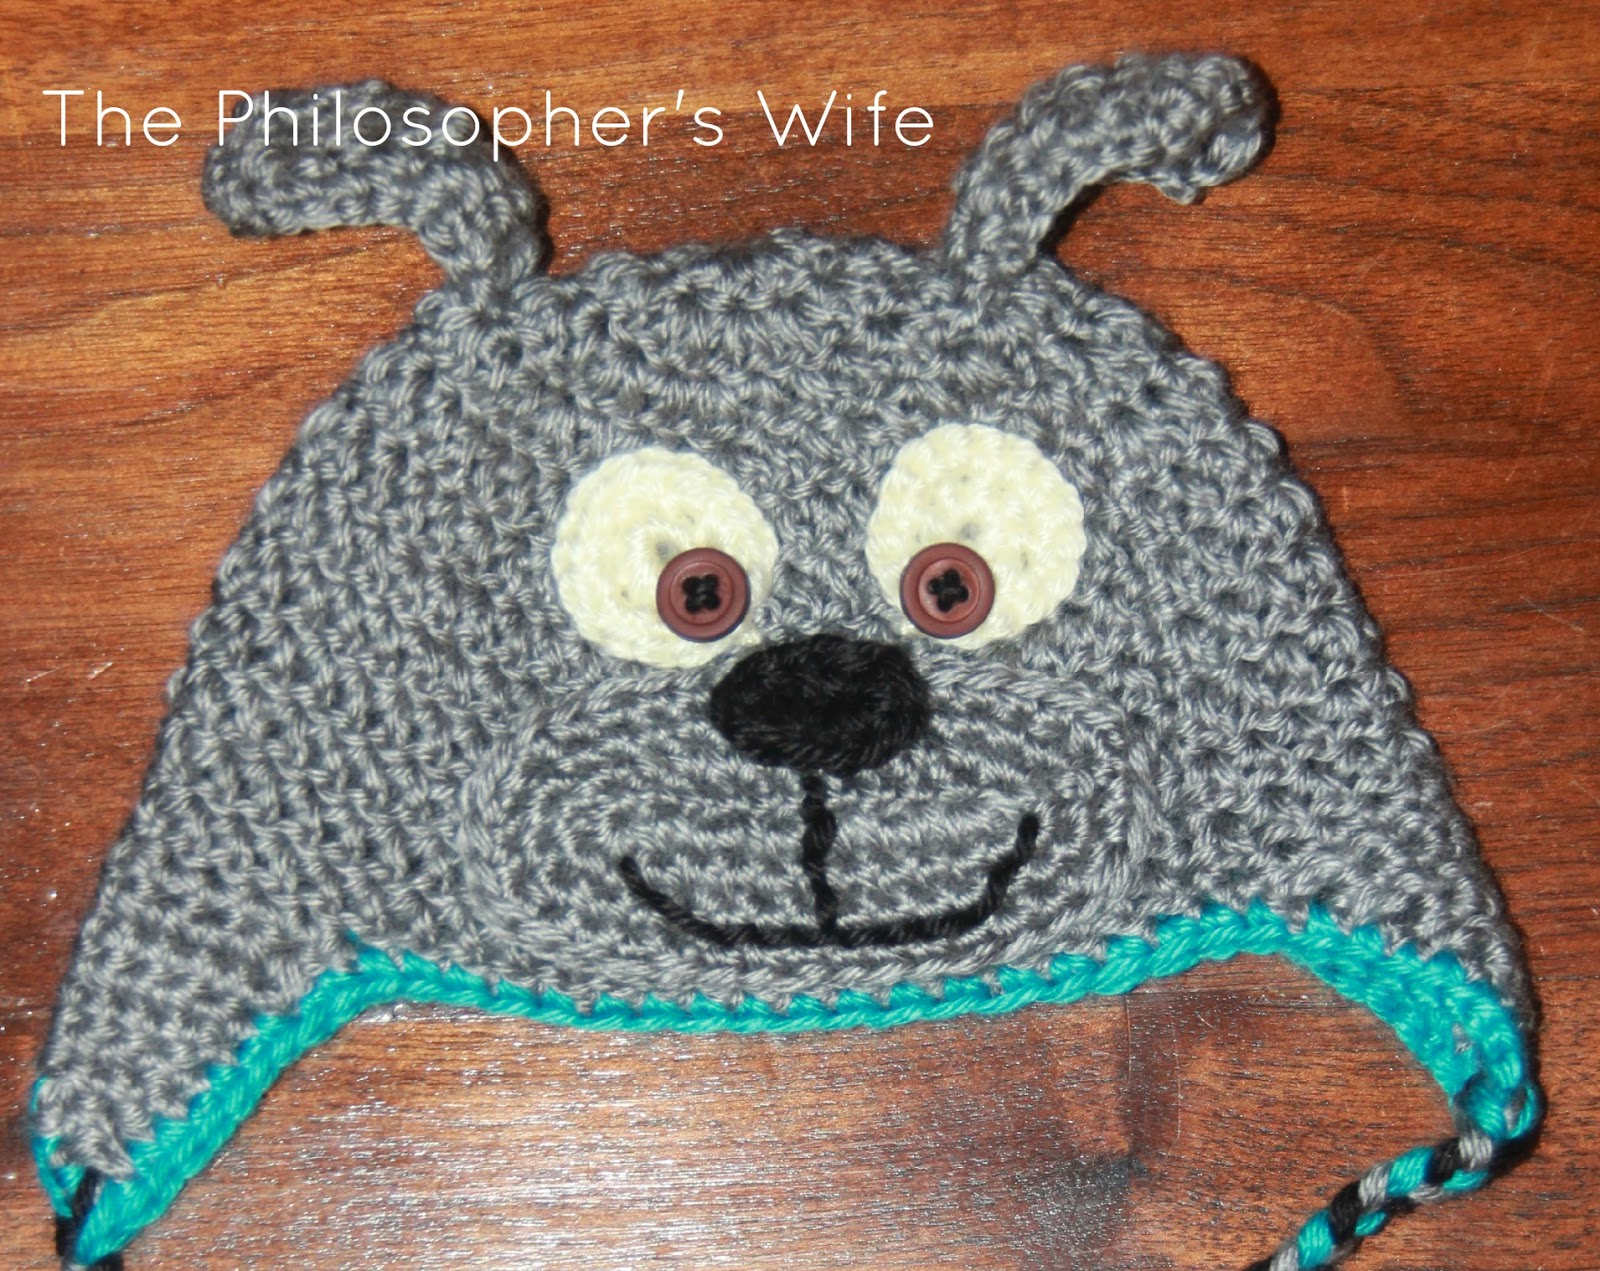 c2825c9c695 Sarah s Puppy Hat Pattern was my inspiration. My crocheting seems to be  tighter than hers